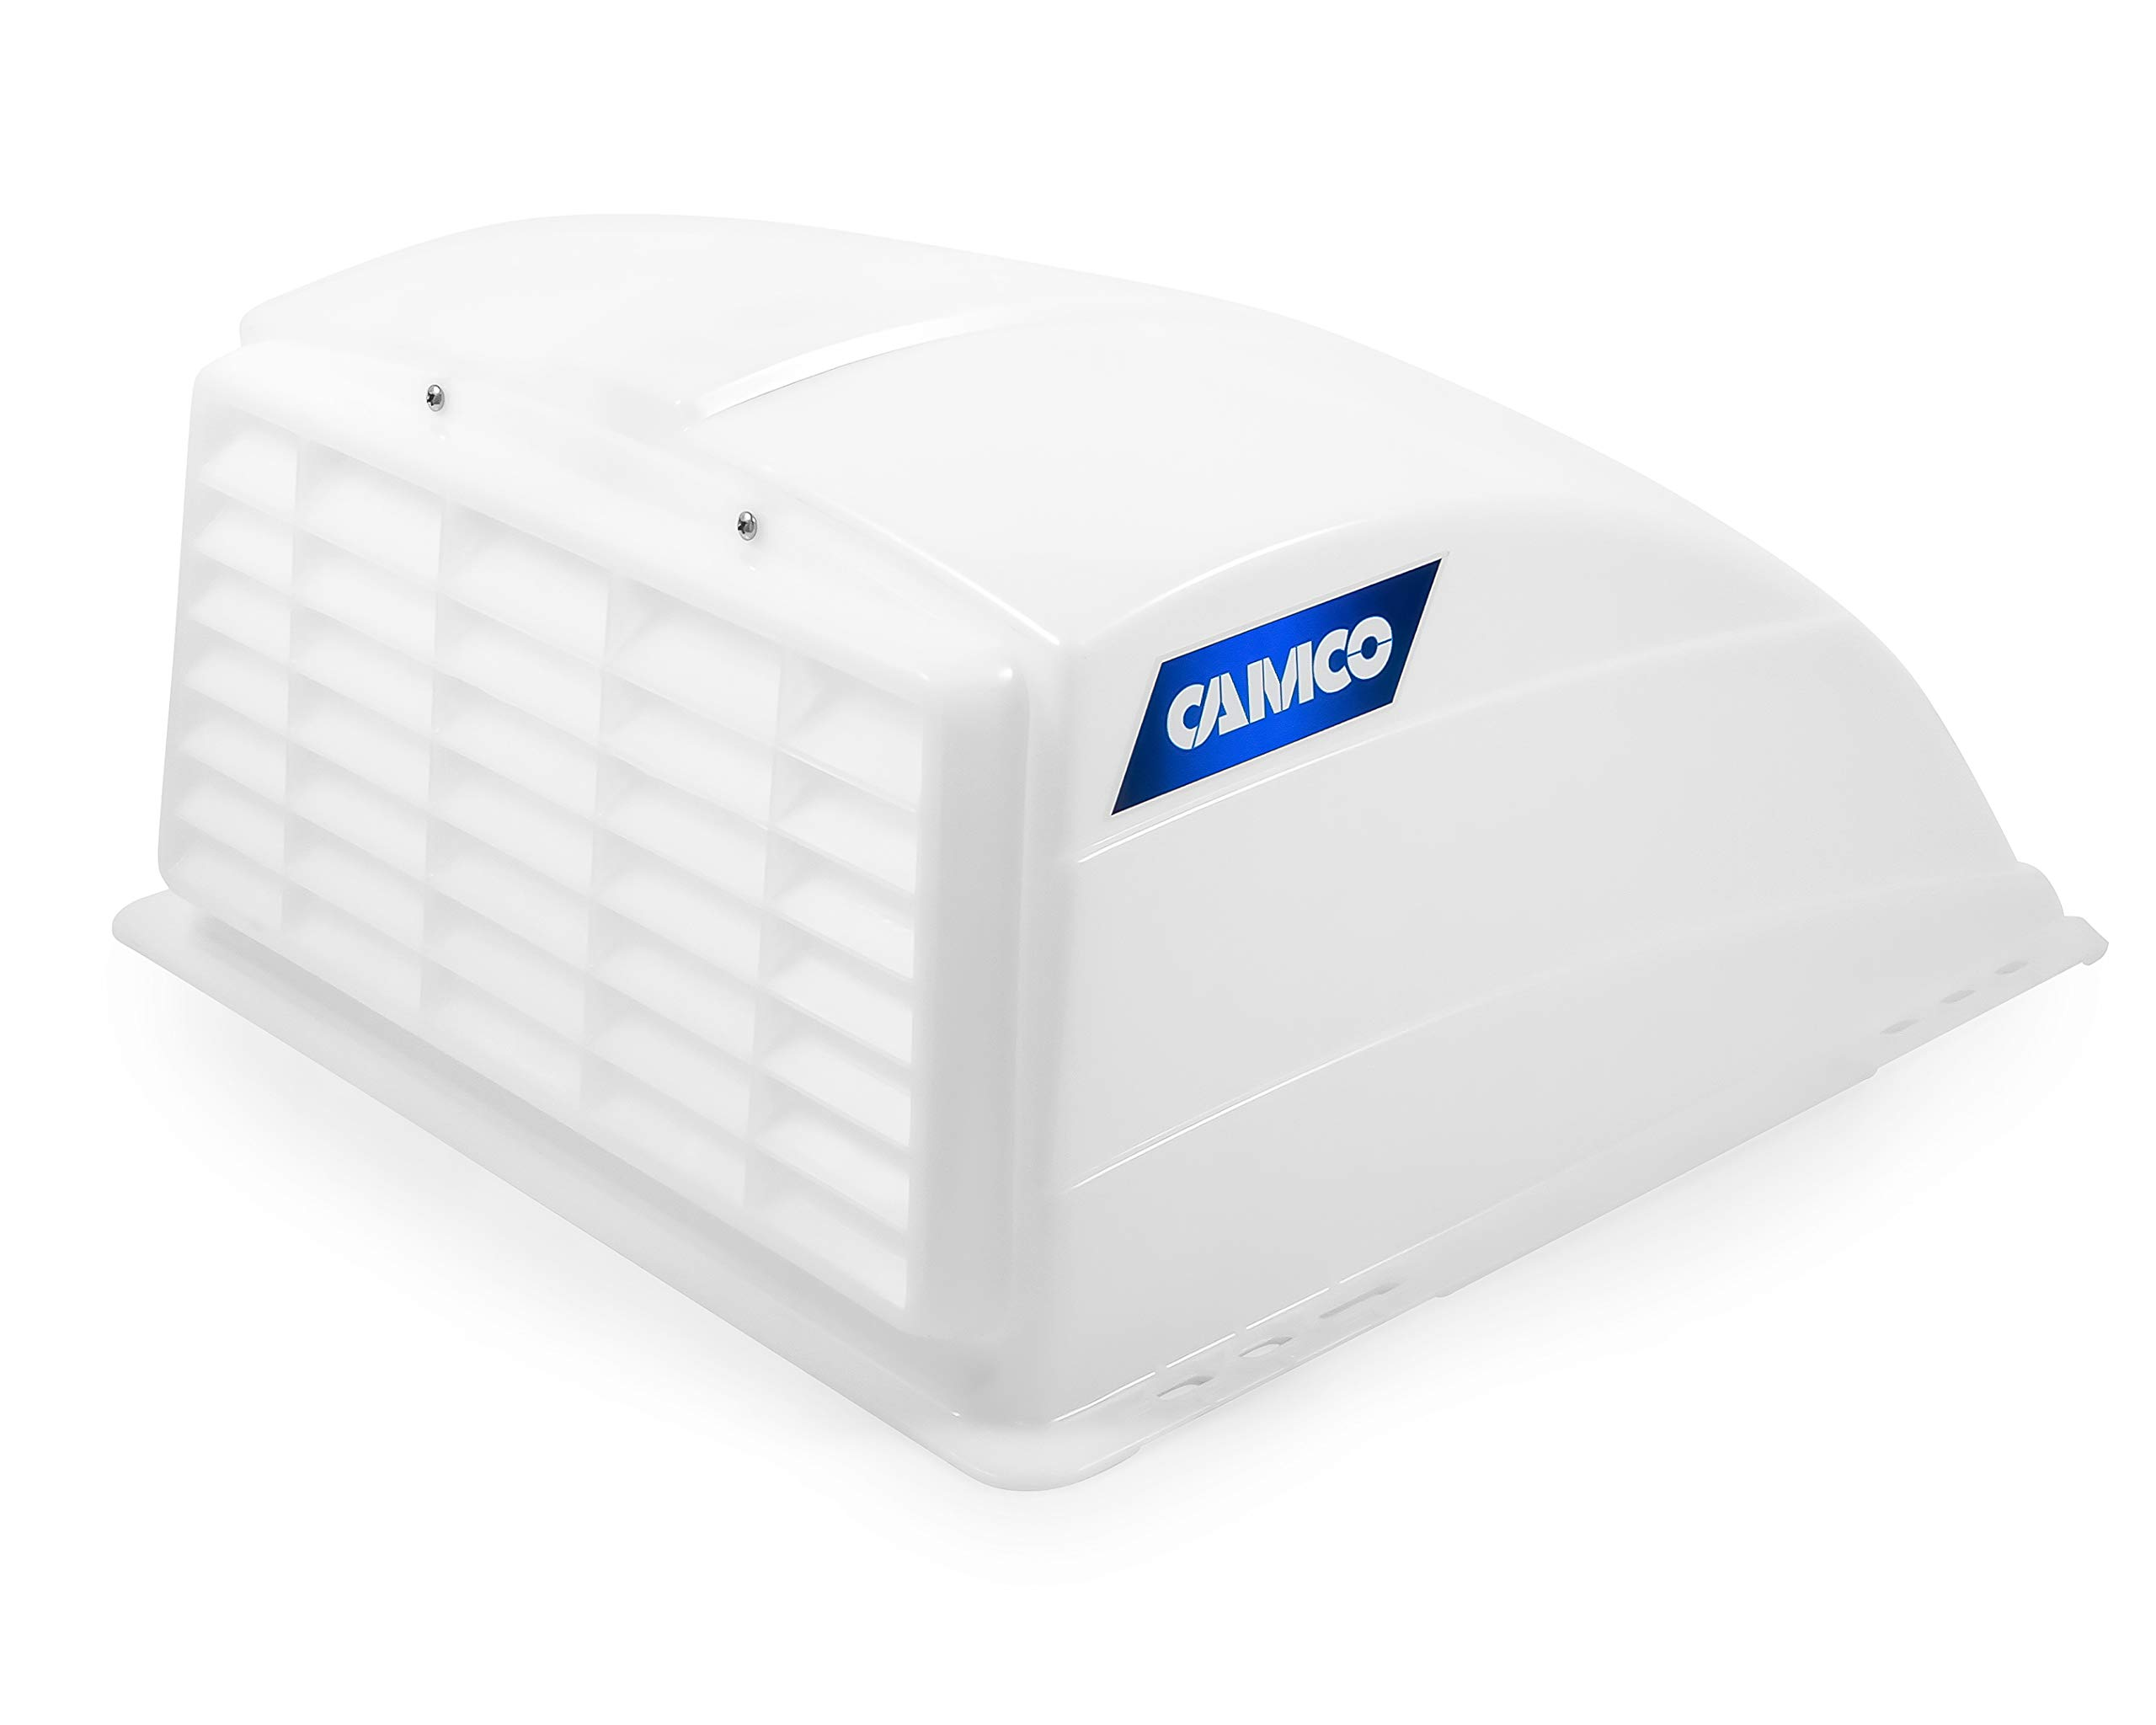 Camco RV Roof Vent Cover, Opens For Easy Cleaning, Aerodynamic Design, Easily Mounts to RV With Included Hardware - (White) (40431) by Camco